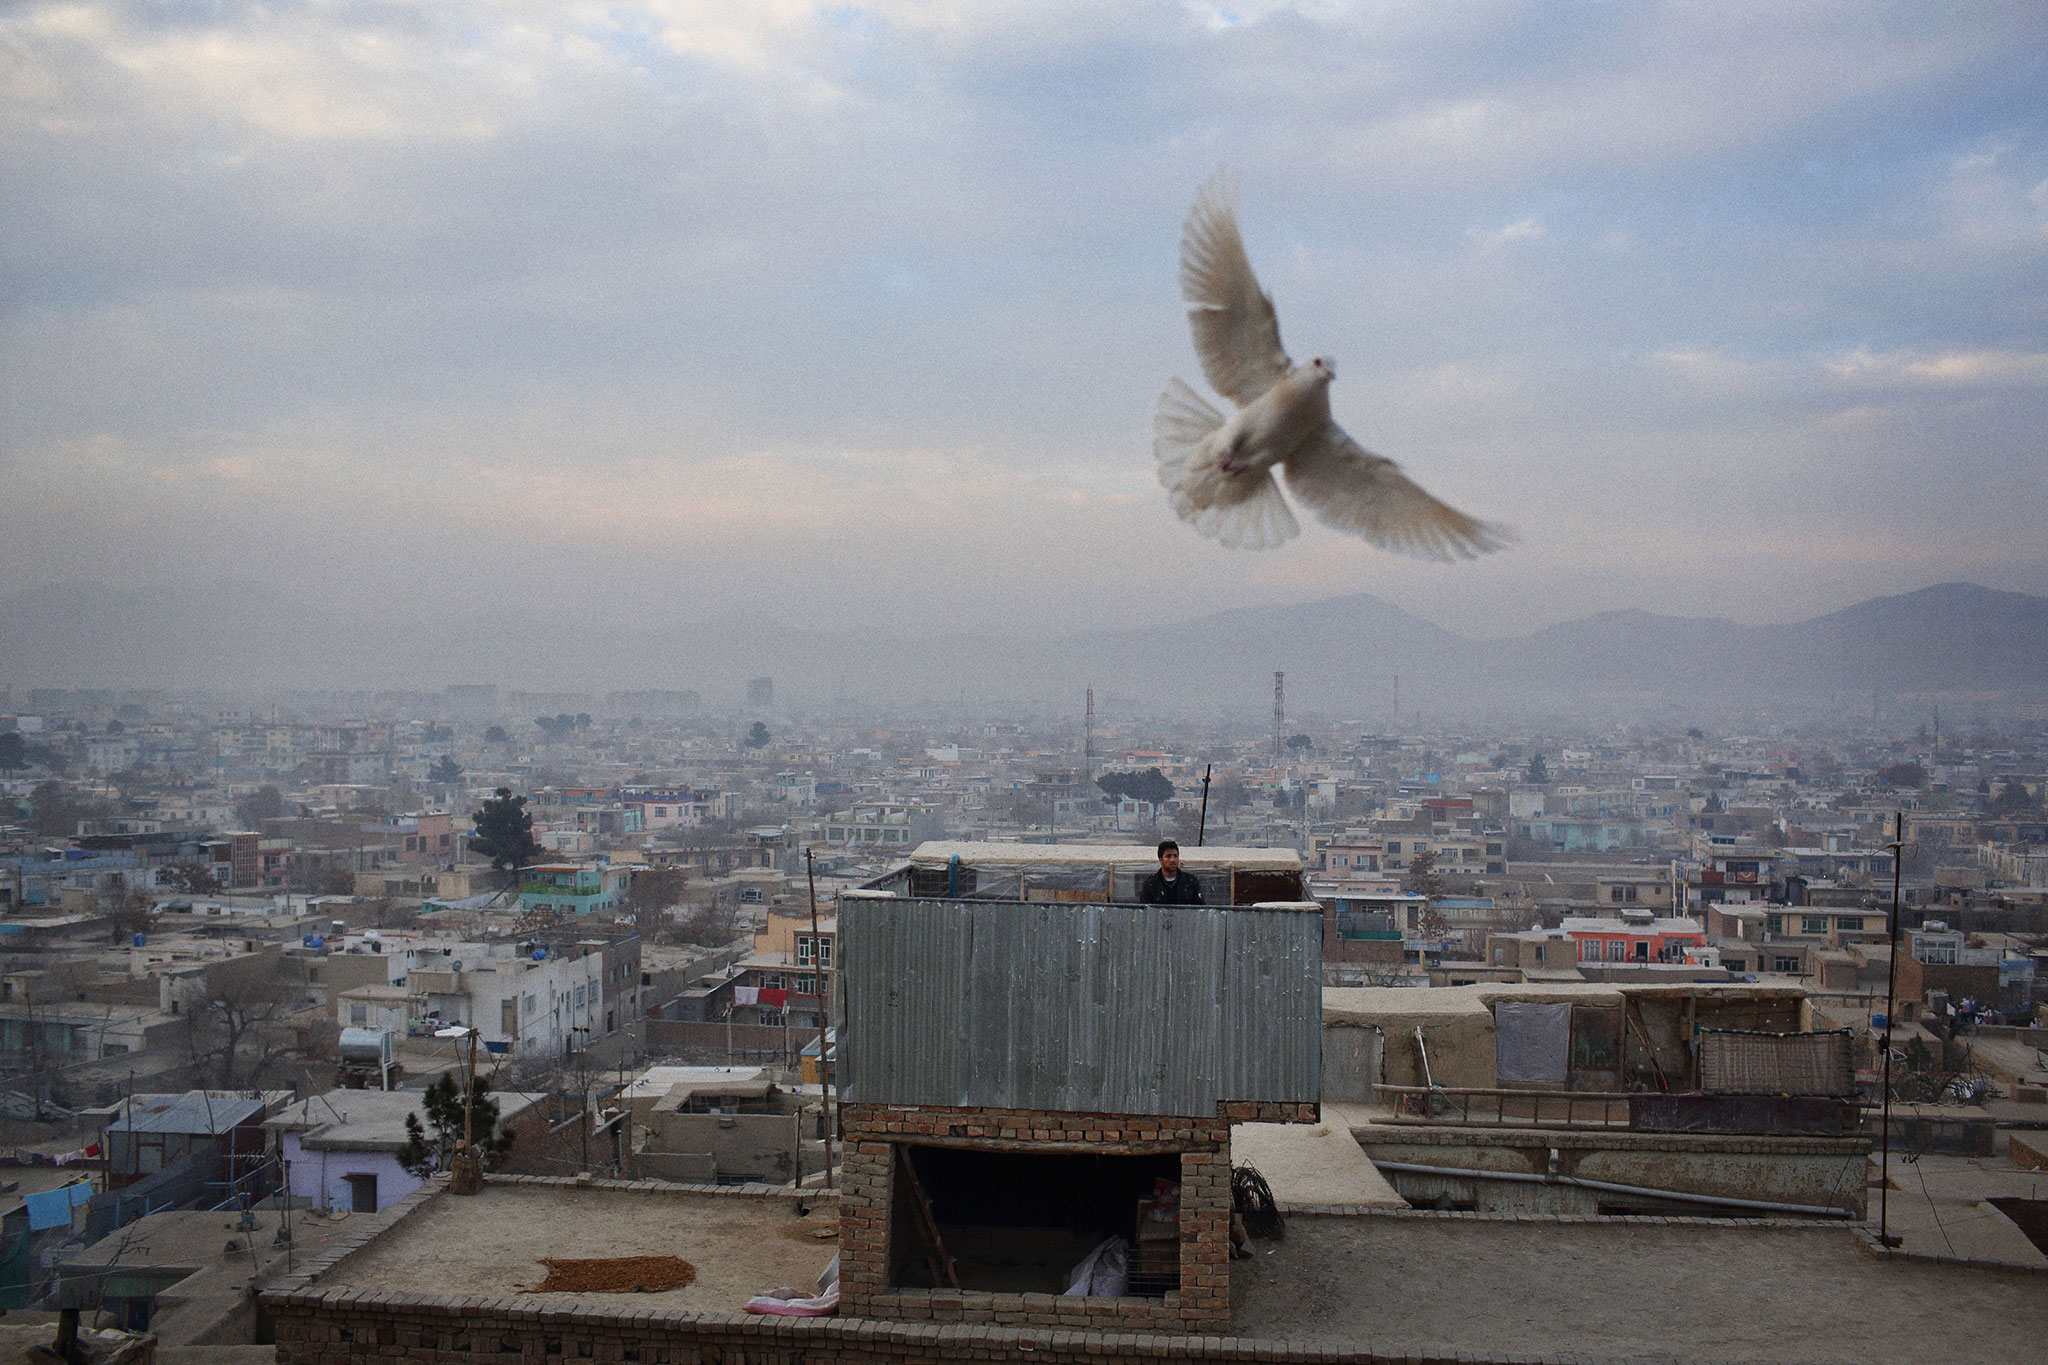 kabul-cityscape-quilty